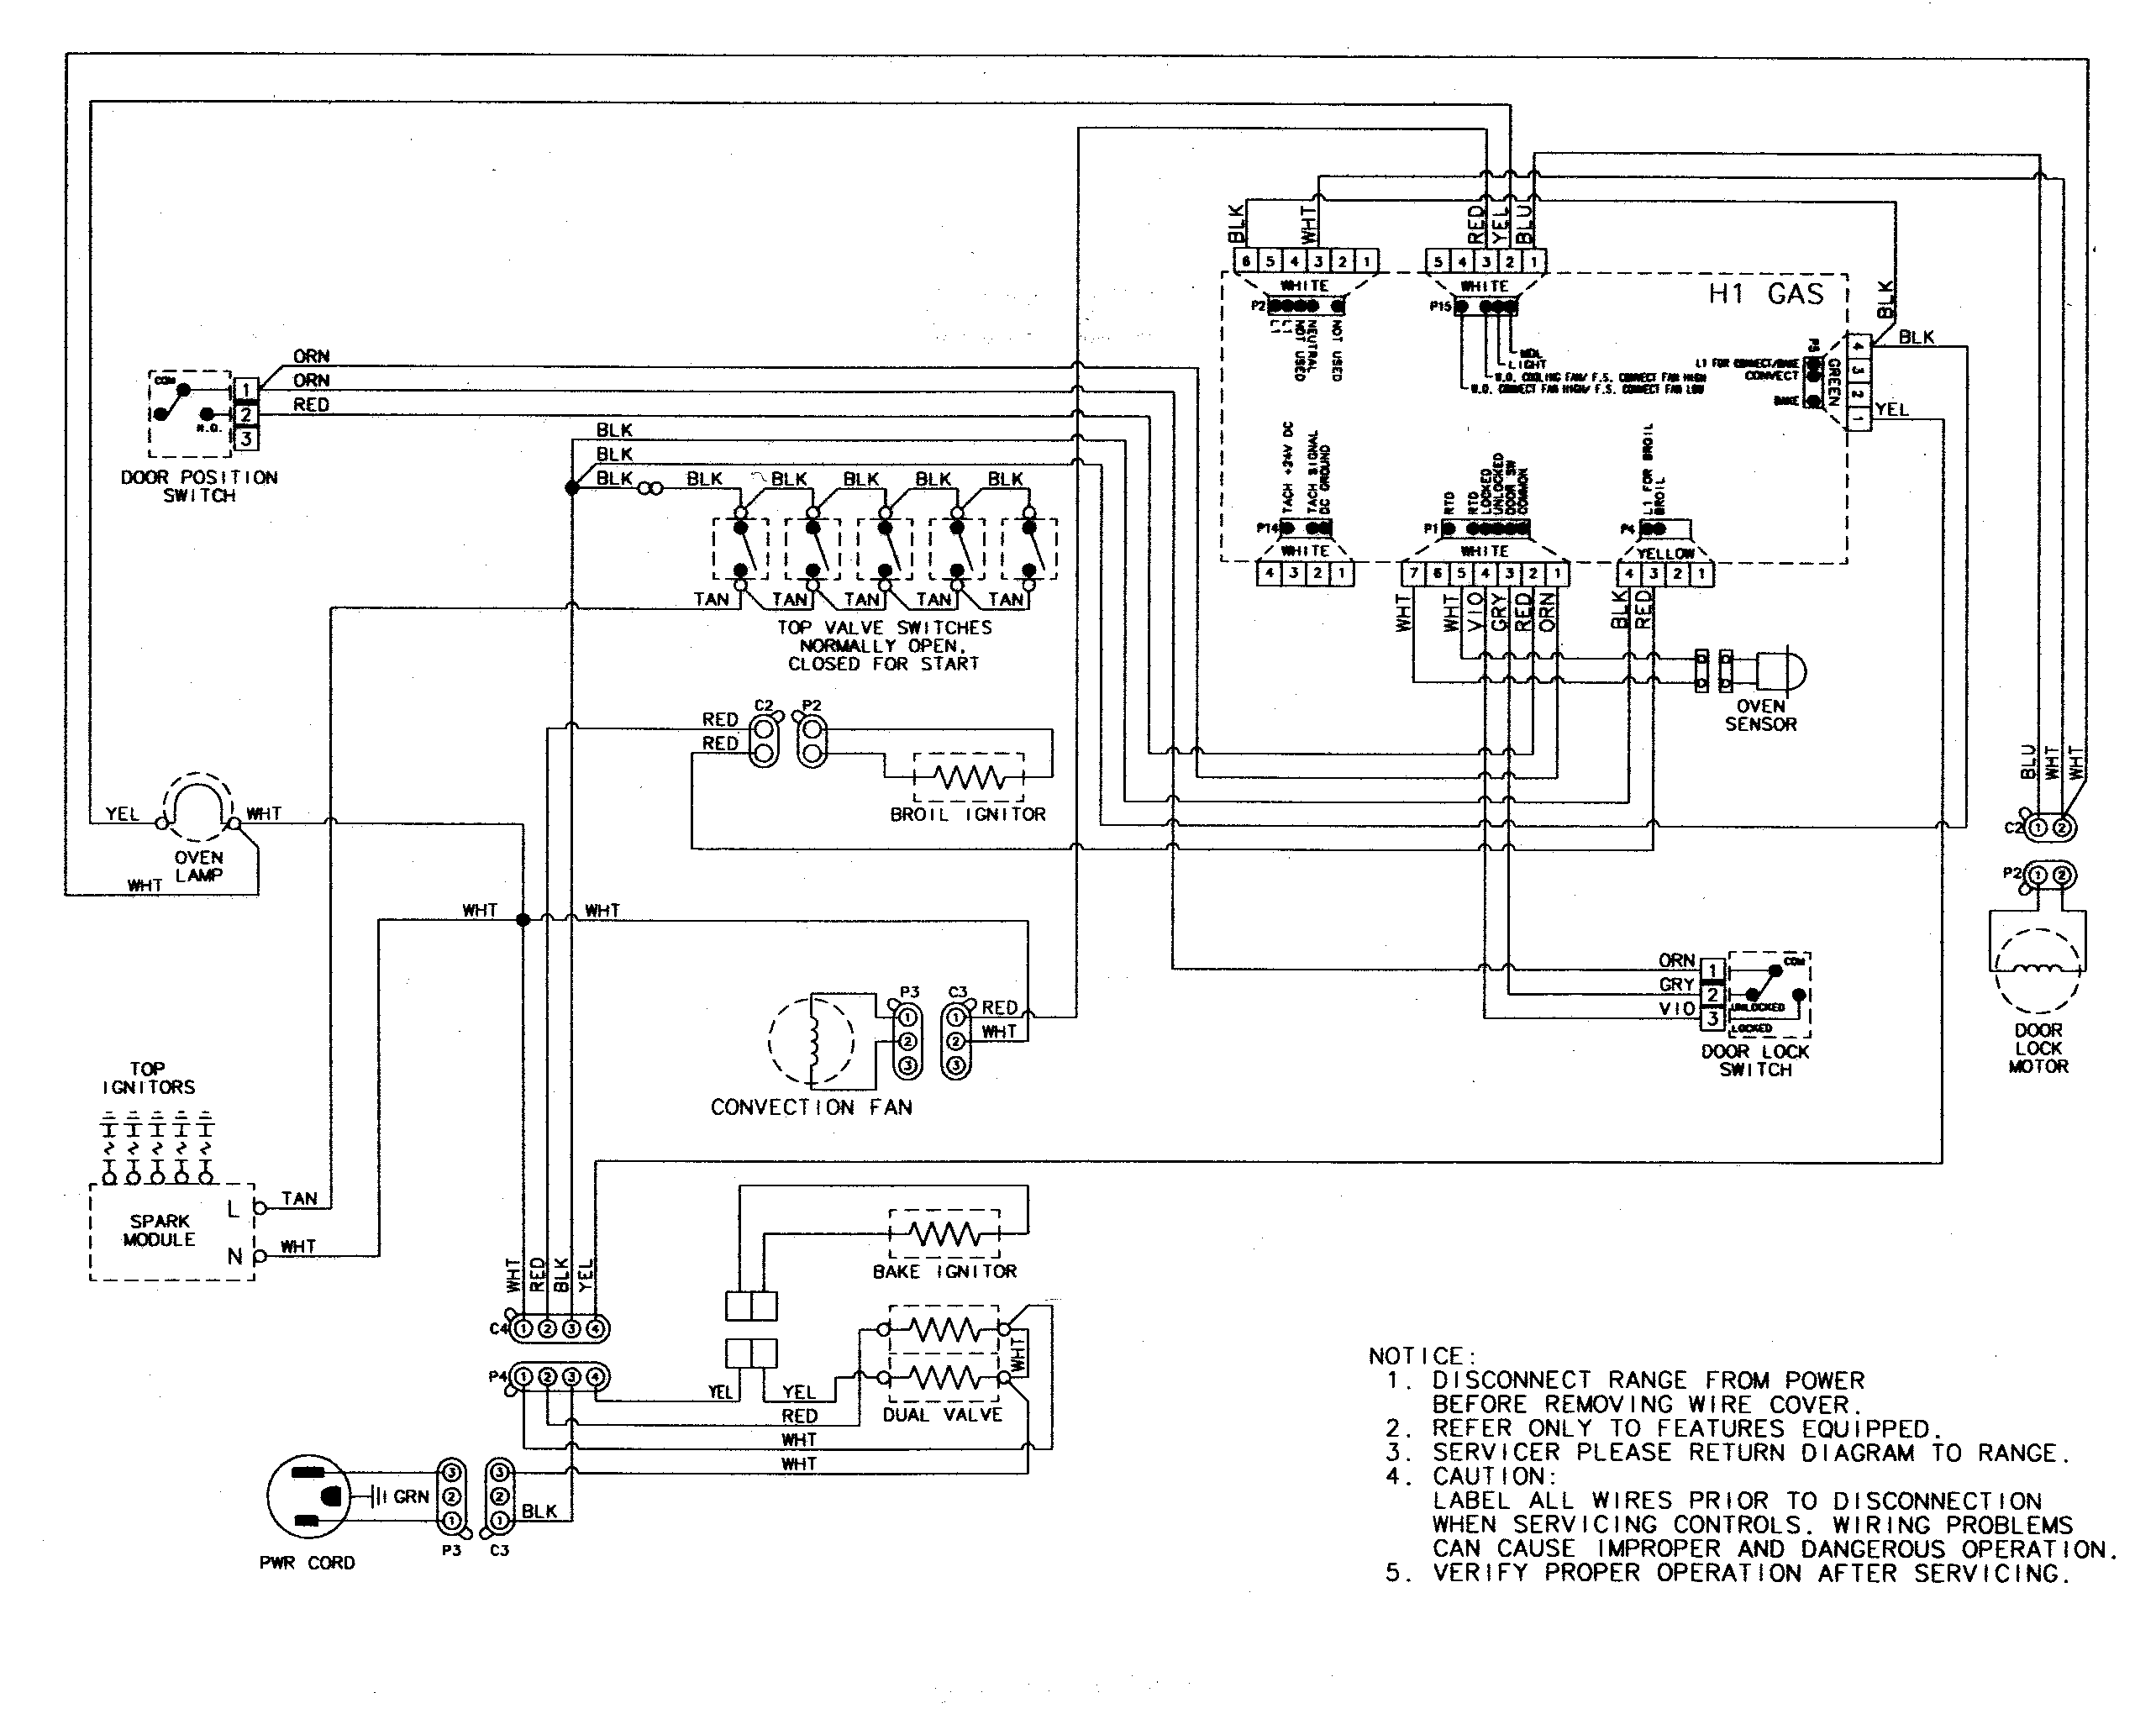 Ge Furnace Wiring Diagram besides Maytag Centennial Dryer Parts Diagram also Whirlpool Electric Water Heater Replacement Parts additionally Parts For Vermont Castings further Maytag Atlantis Washer Parts Diagram. on whirlpool furnace wiring diagram